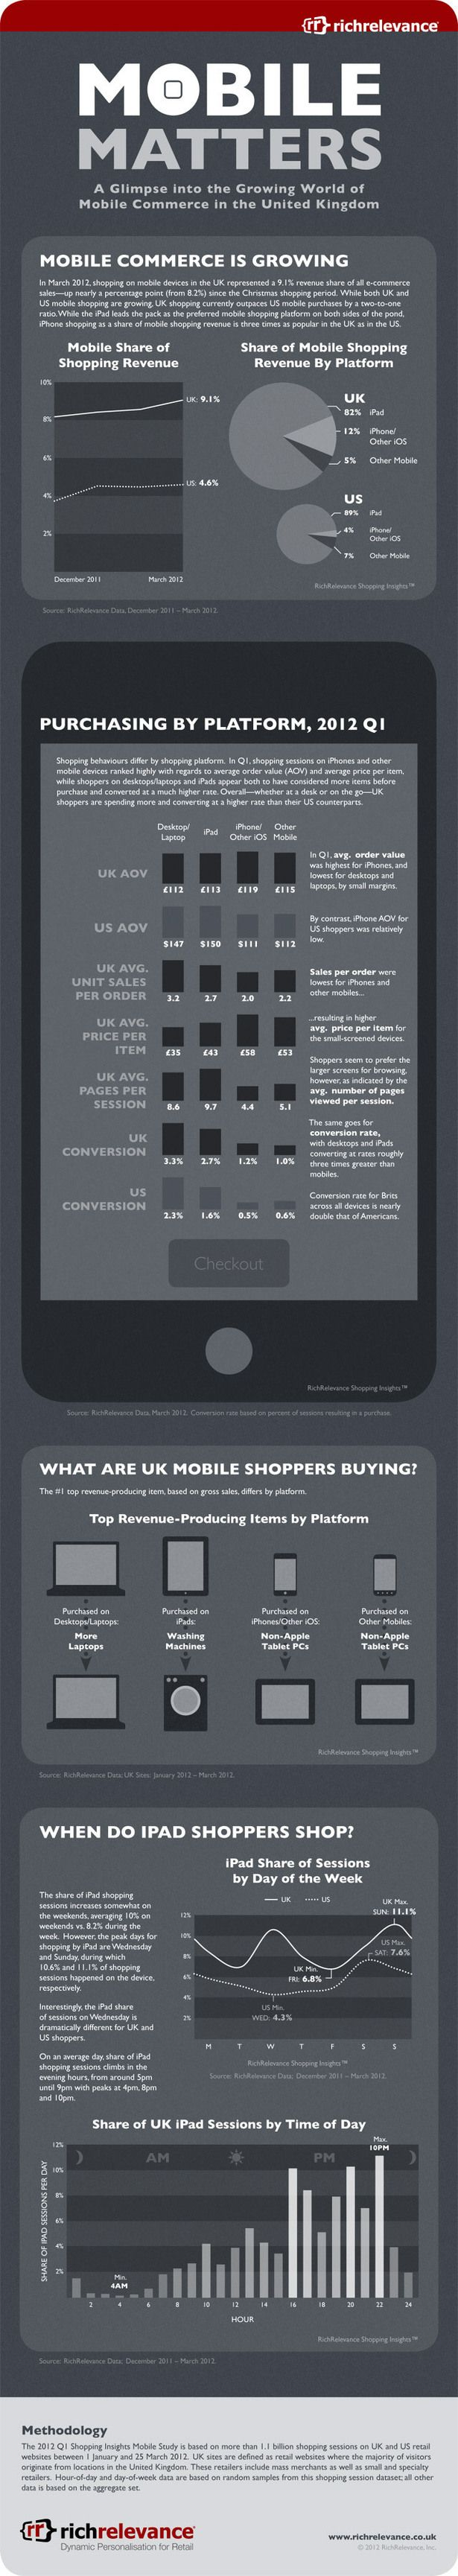 Our websites are doing more like 3% m-commerce transactions. Time for (another) overhaul